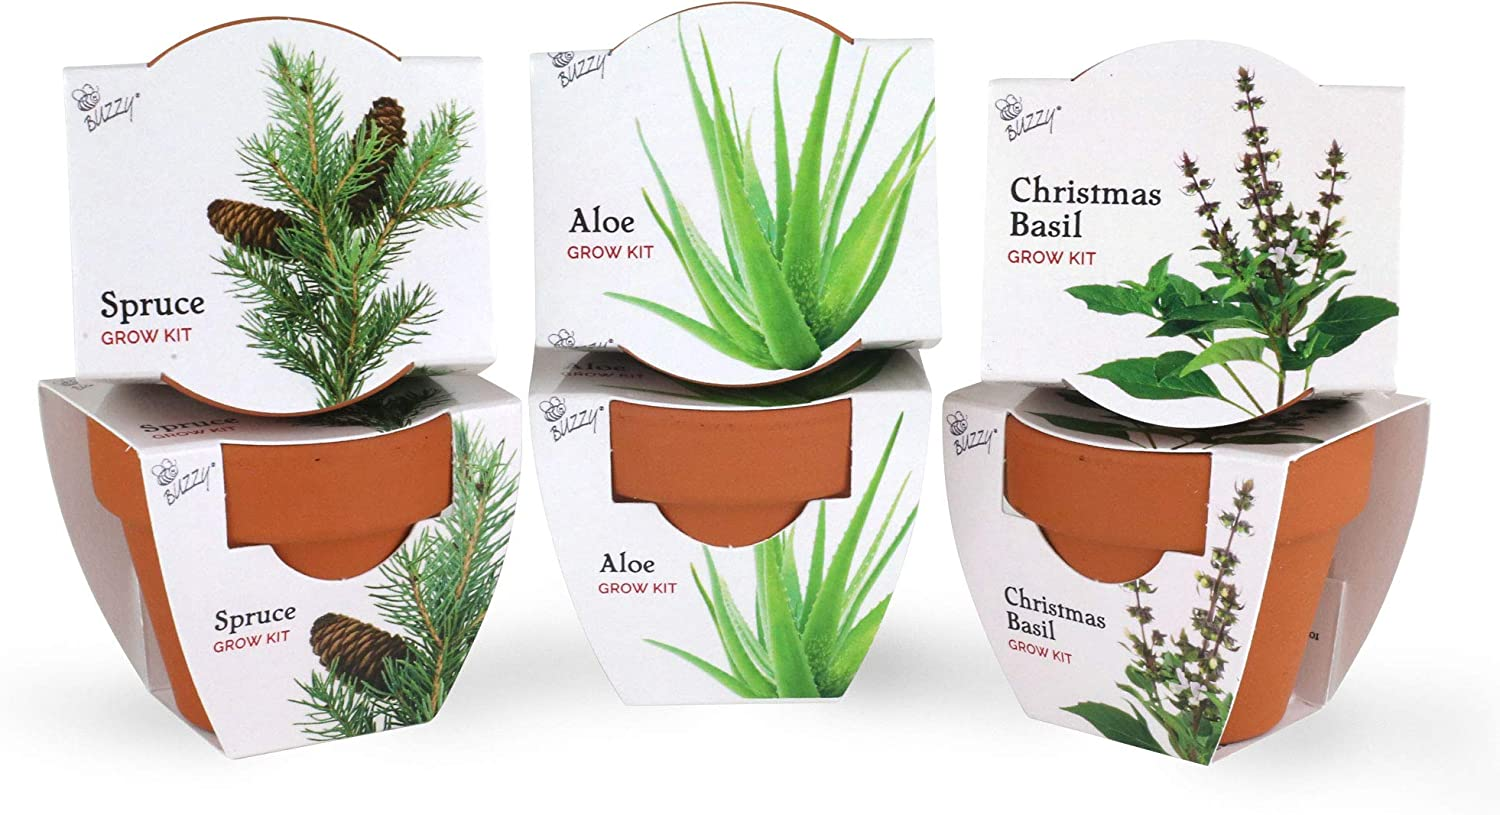 BUZZY Terracotta Mini Grow Pots | Assorted 6-Pack | Radiant Collection | Aloe, Christmas Basil, Spruce | Best Gardening Gifts and Favors | Growth Guaranteed